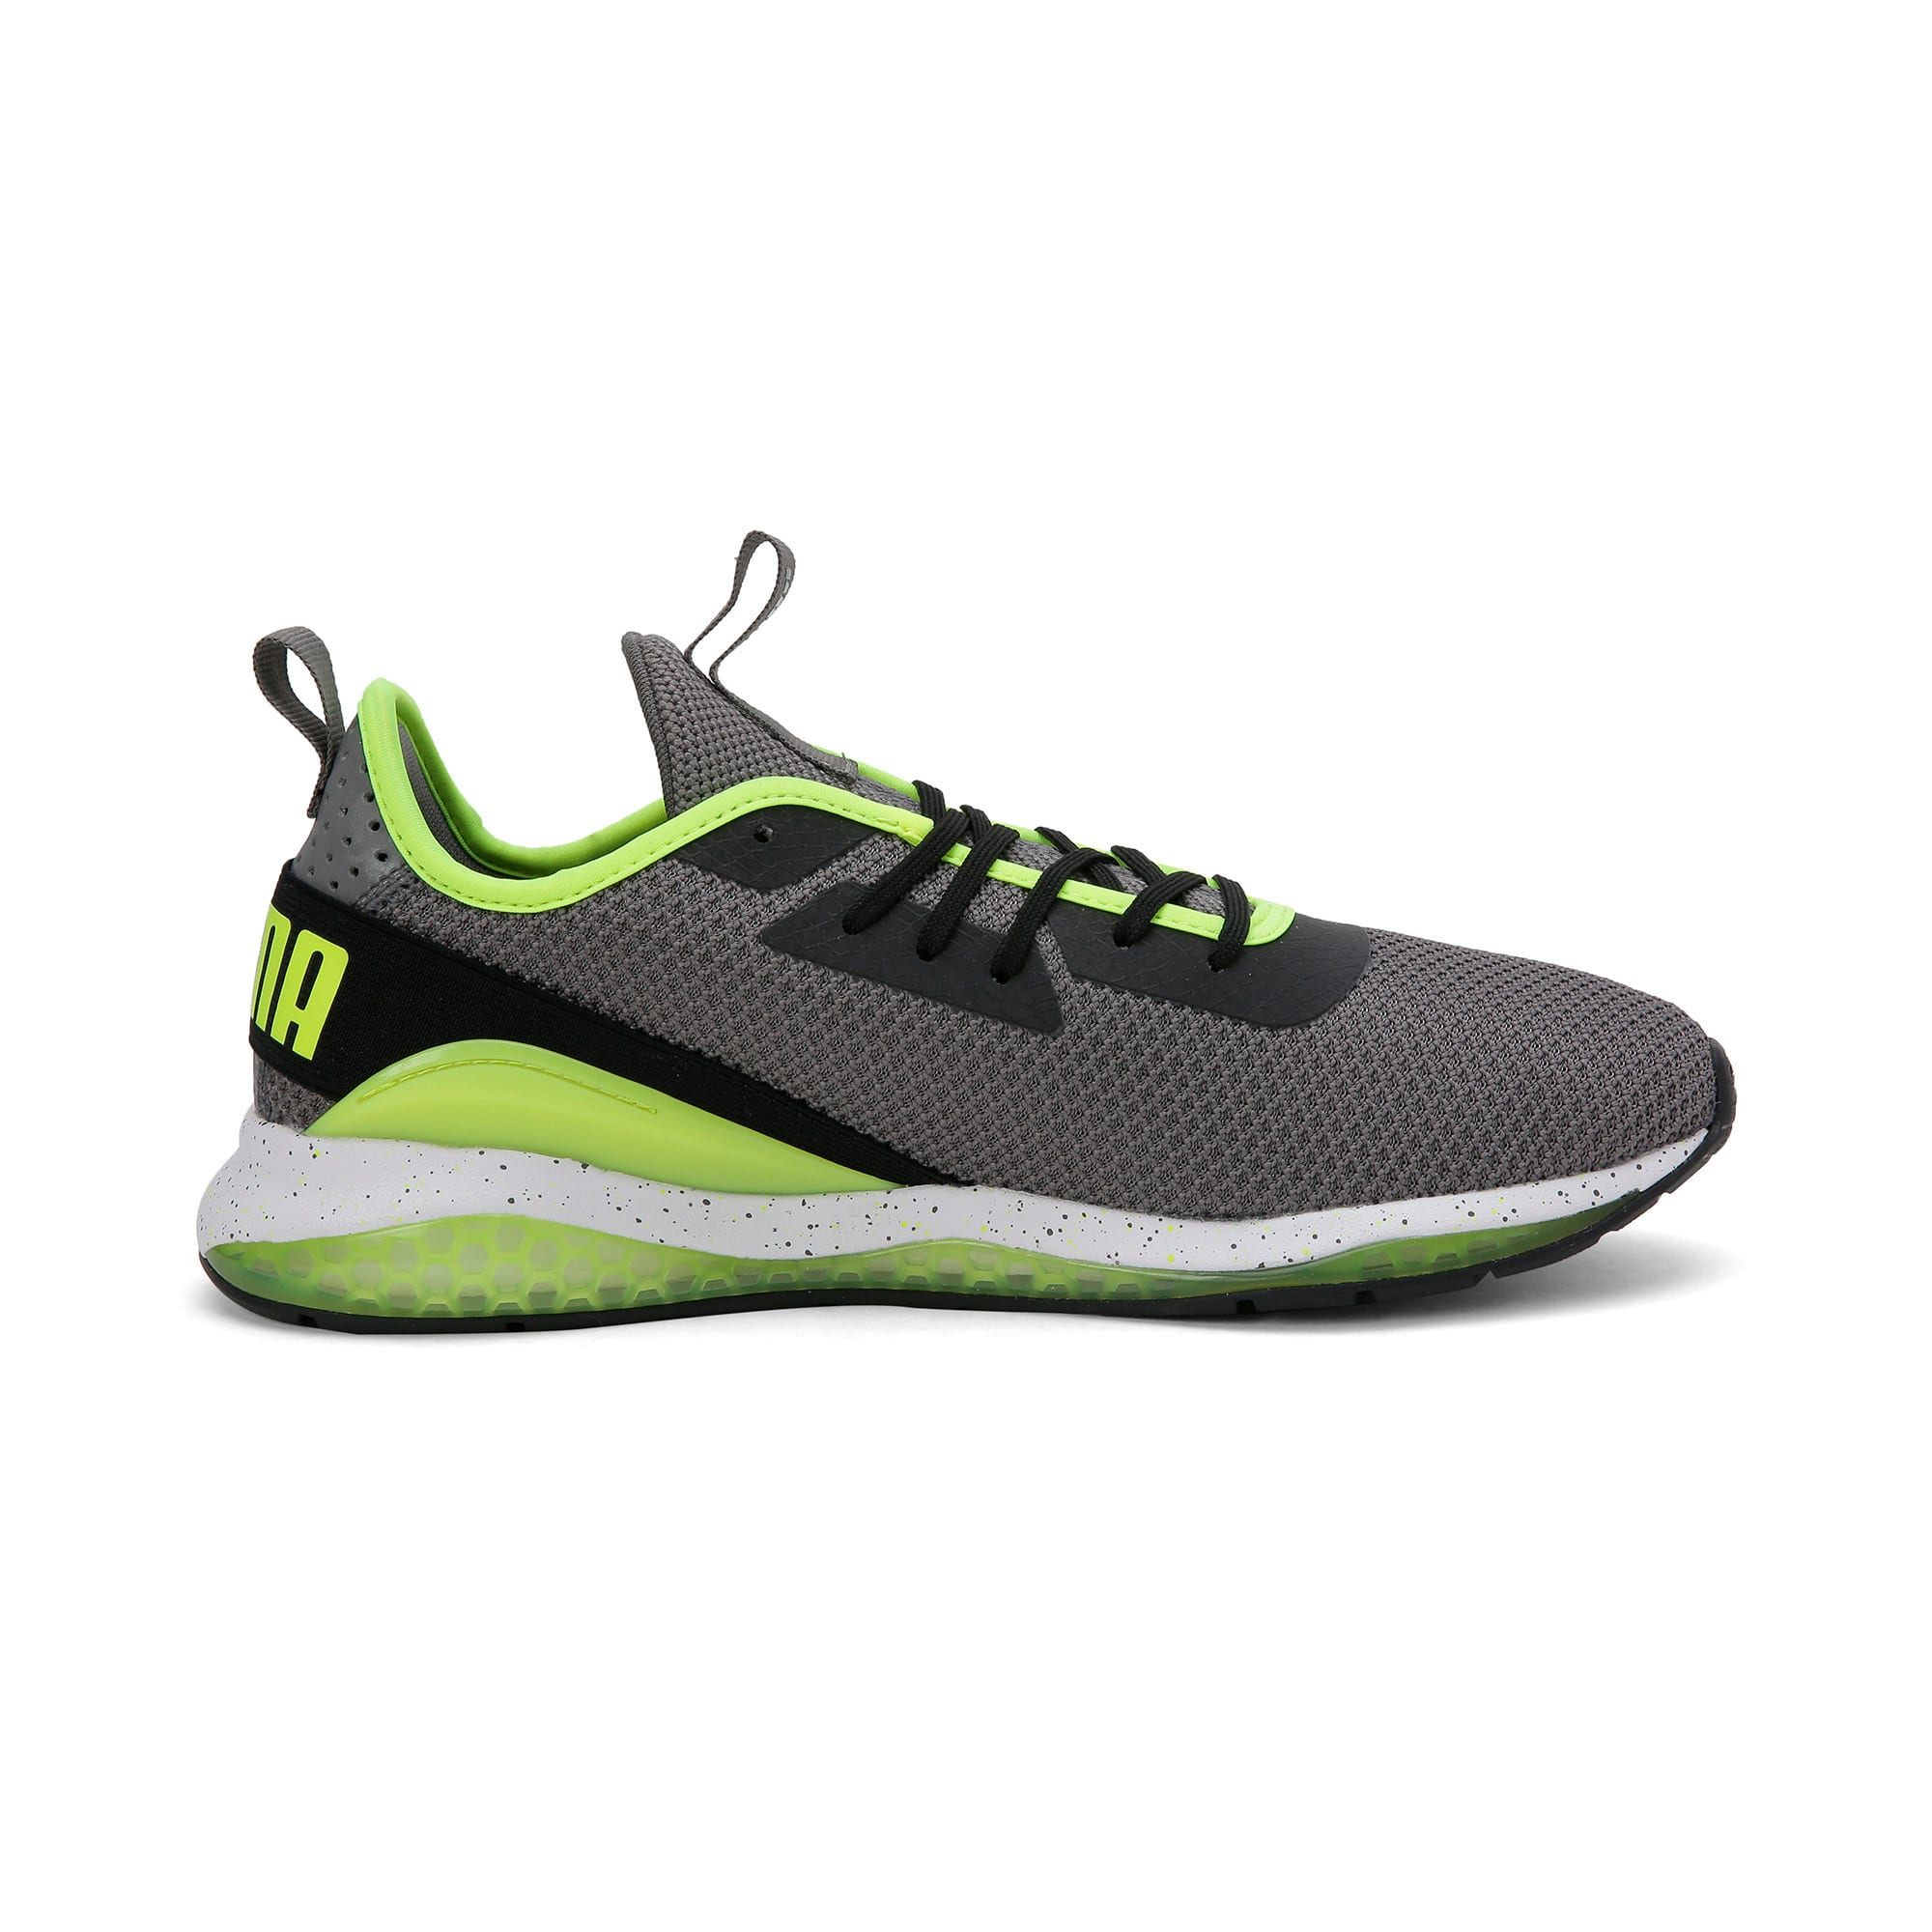 Thumbnail 7 of Cell Descend Weave Running Trainers, CASTLEROCK-Black-Yellow, medium-IND